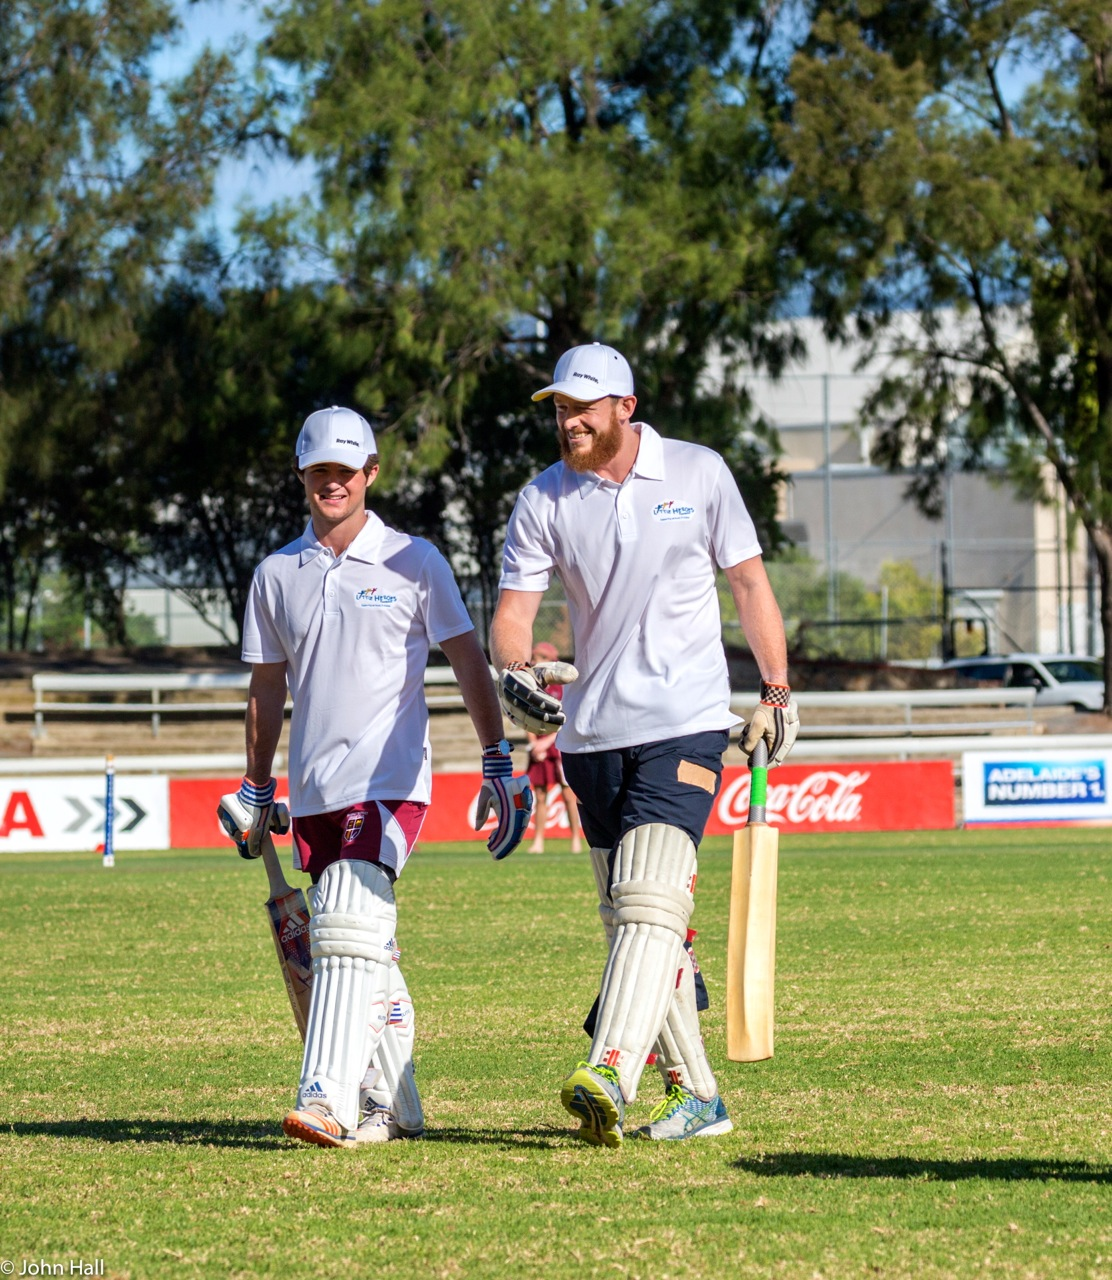 Up and coming cricket superstar Harvey Brennan and NAFC ruckman James Craig got right into the spirit of things and provided the crowd with some super shots.